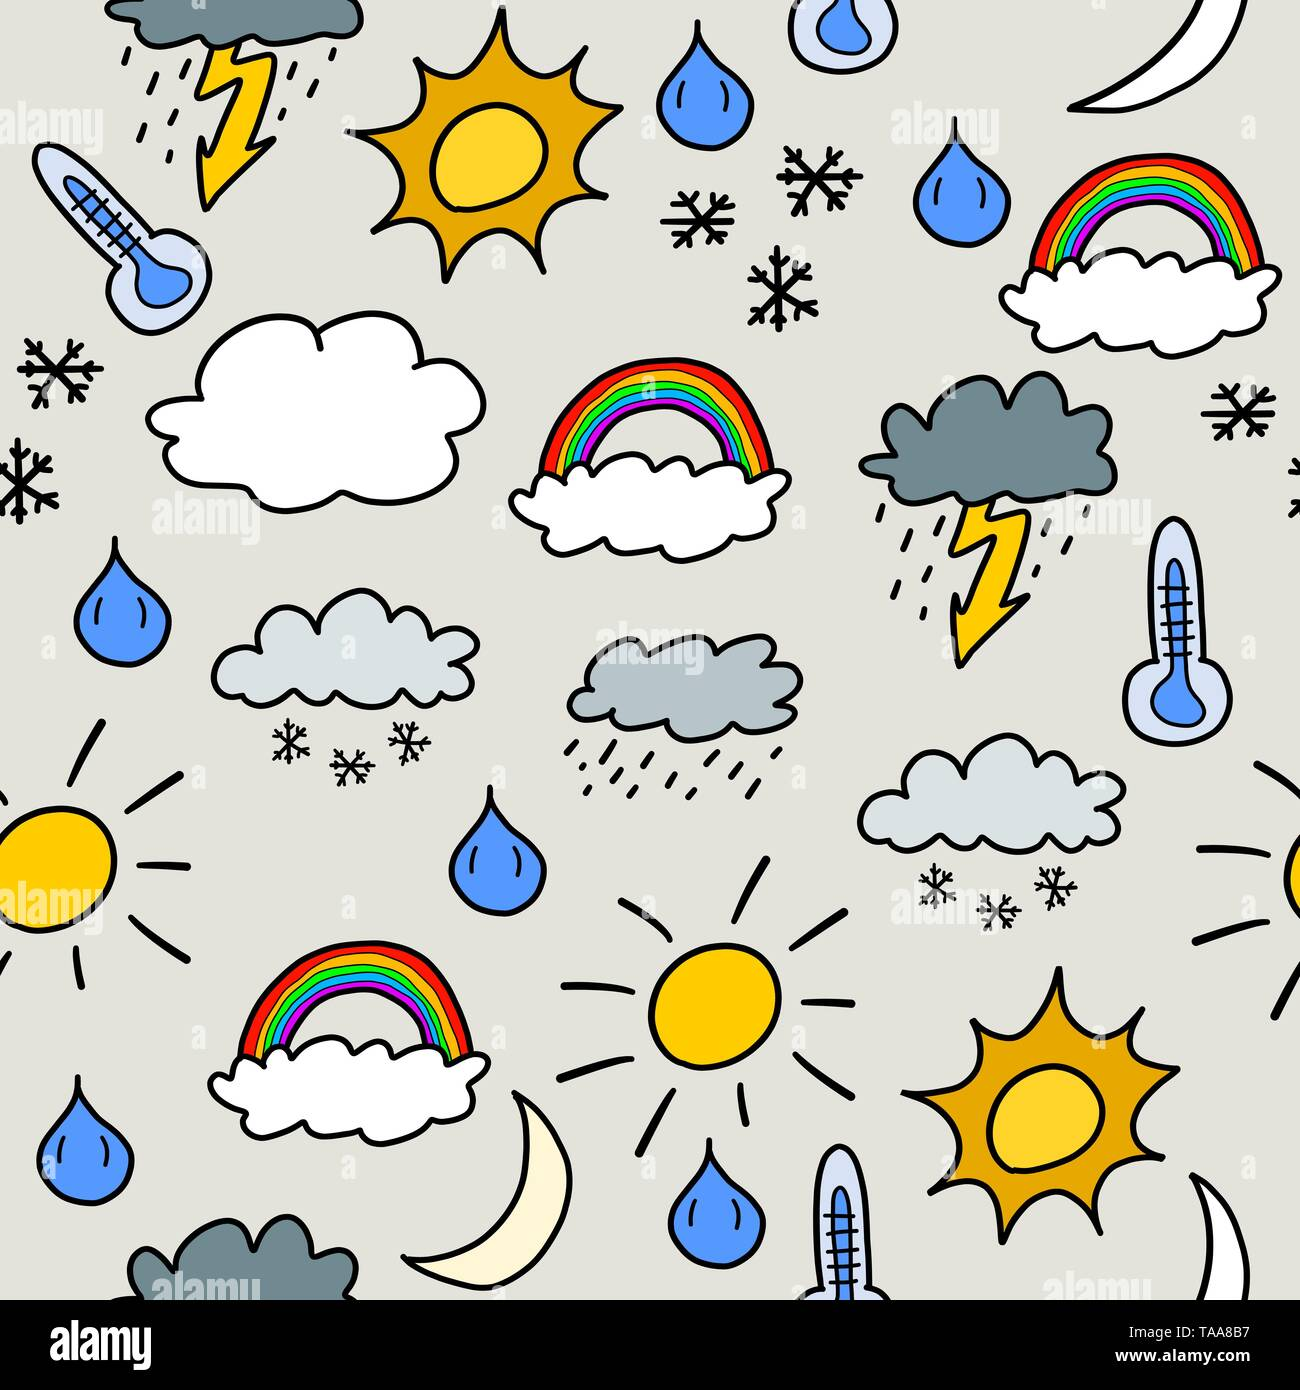 Doodle seamless background texture illustration - weather